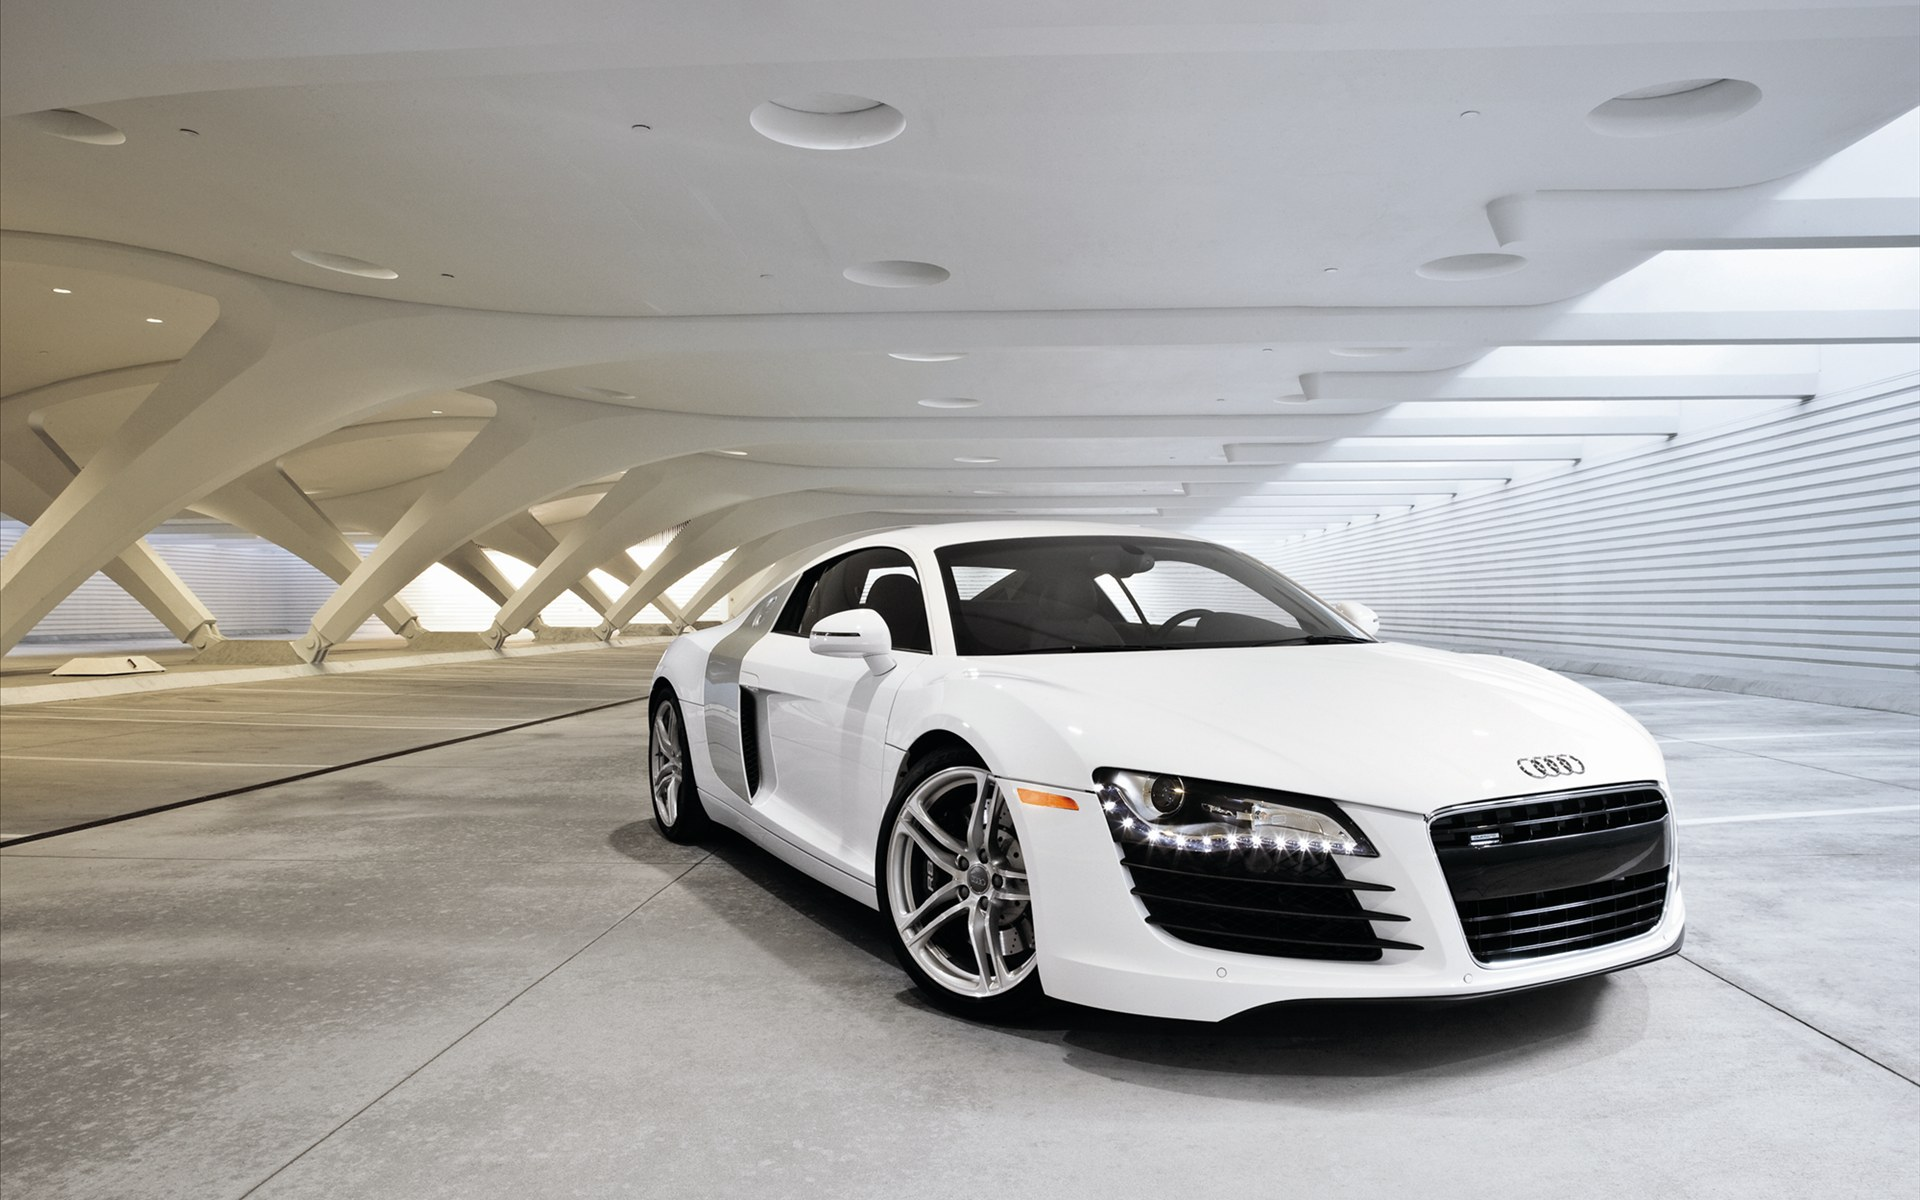 Free wallpaper of the top cars a white sports car audi r8 click to